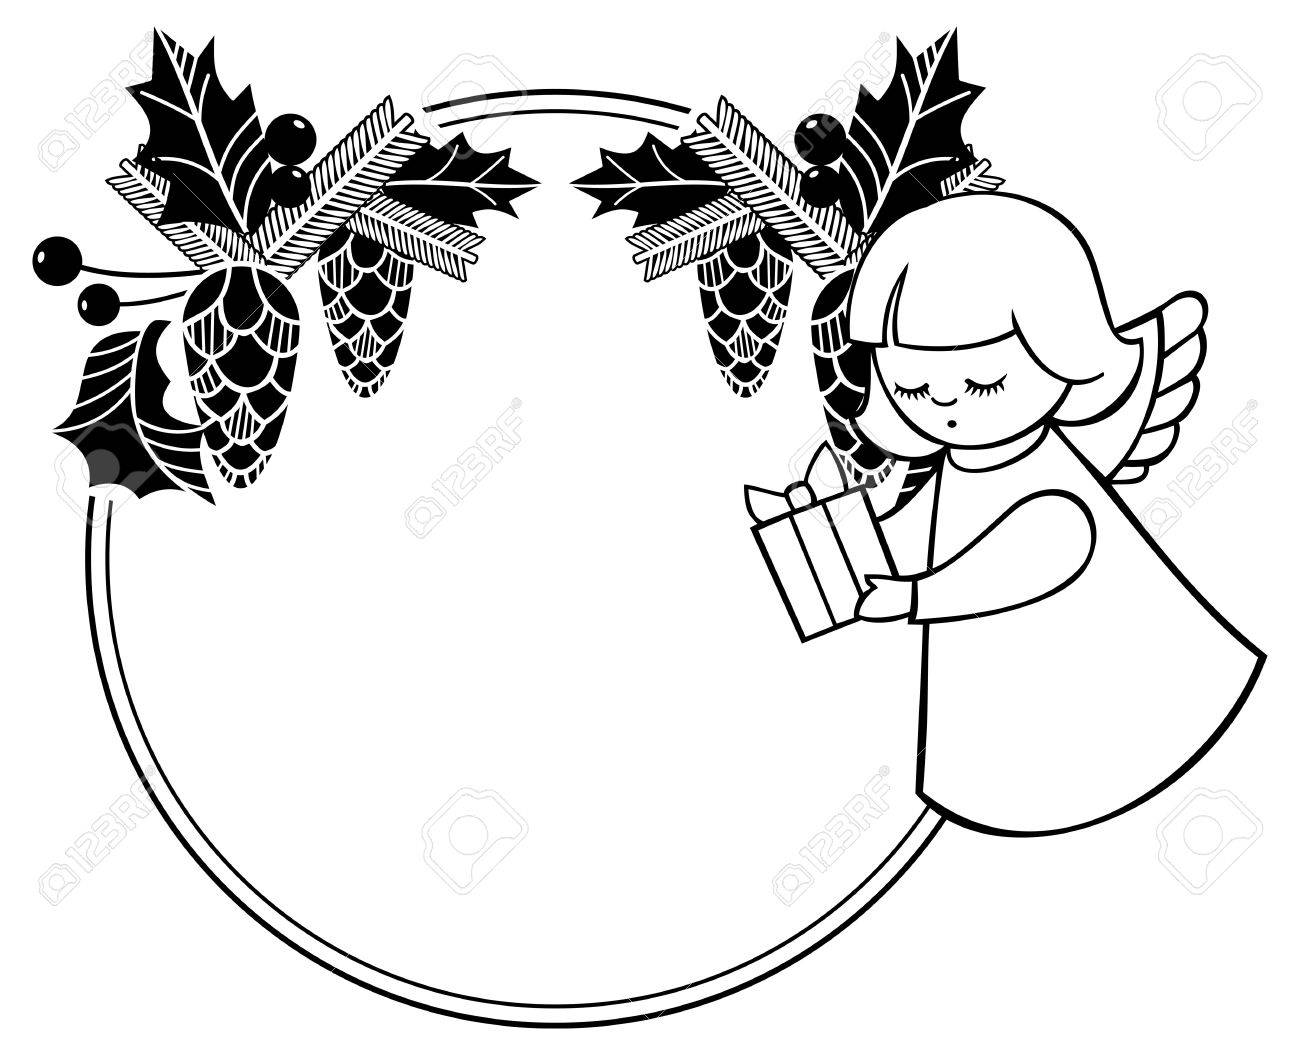 black and white rouen christmas frame with cute angels copy rh 123rf com summer holiday clipart black and white